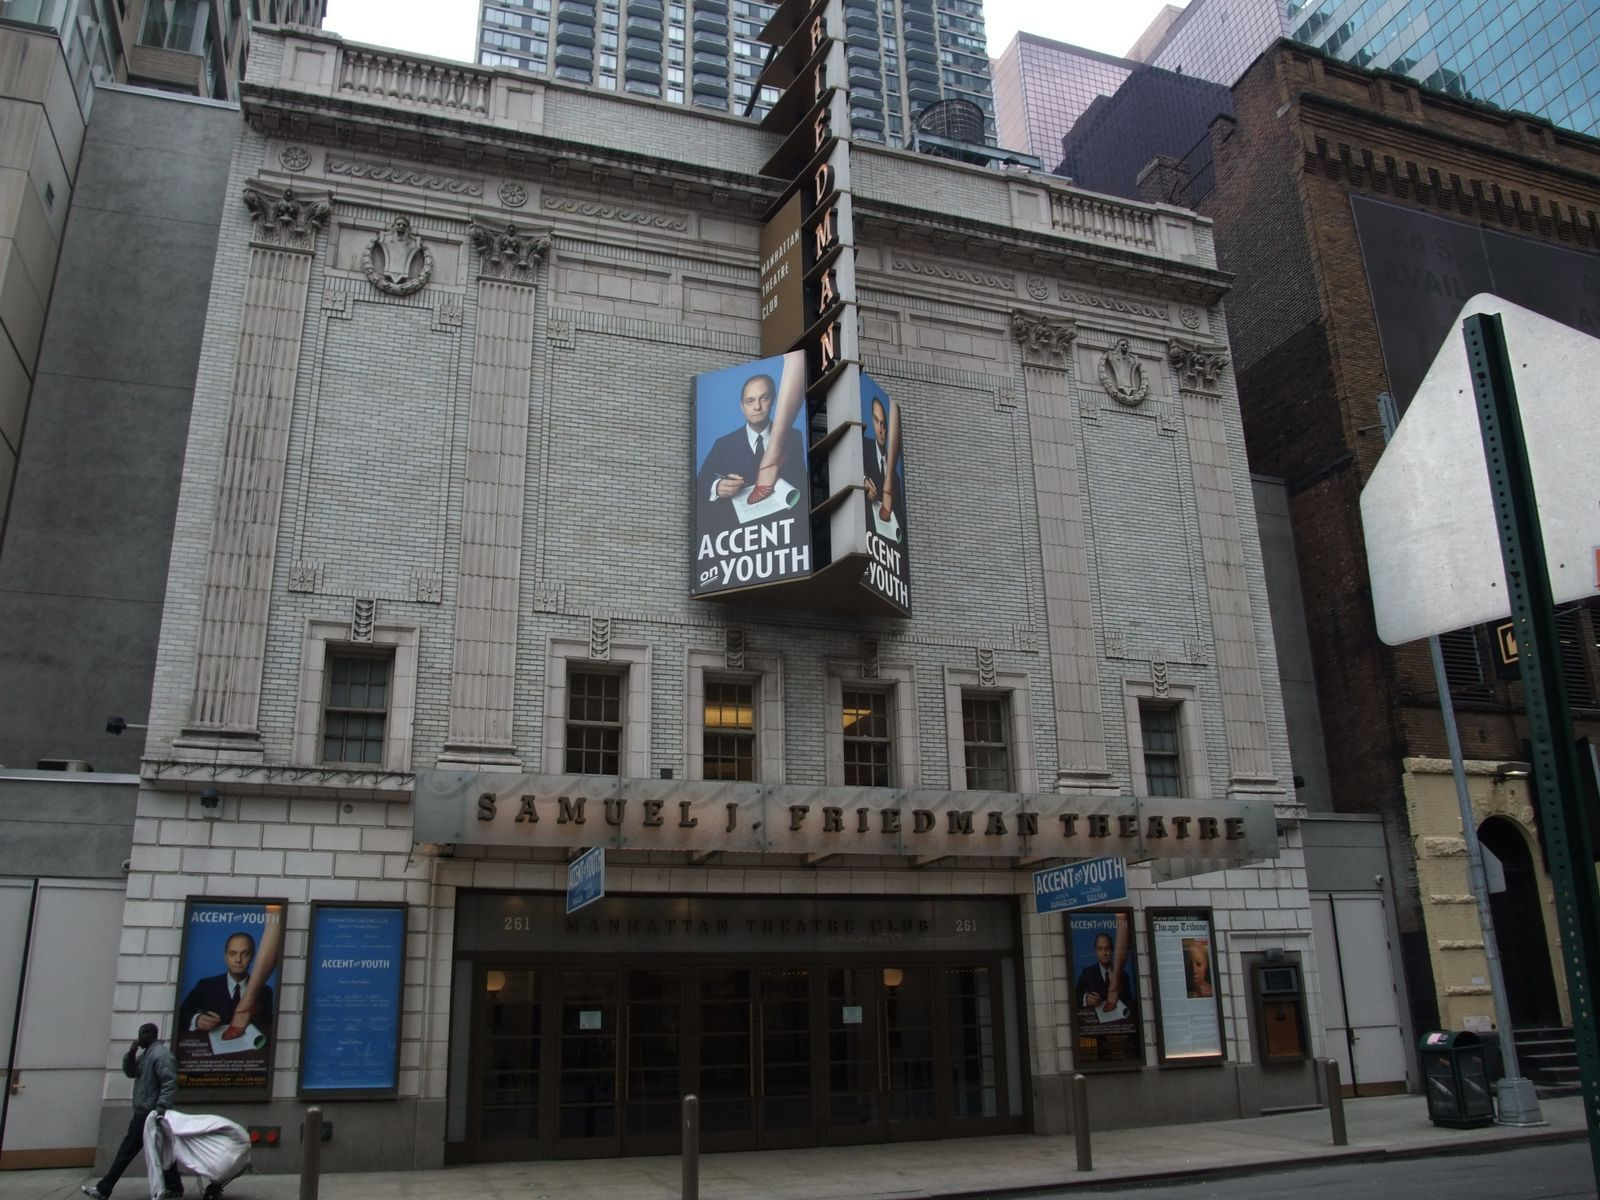 Samuel J. Friedman Theatre